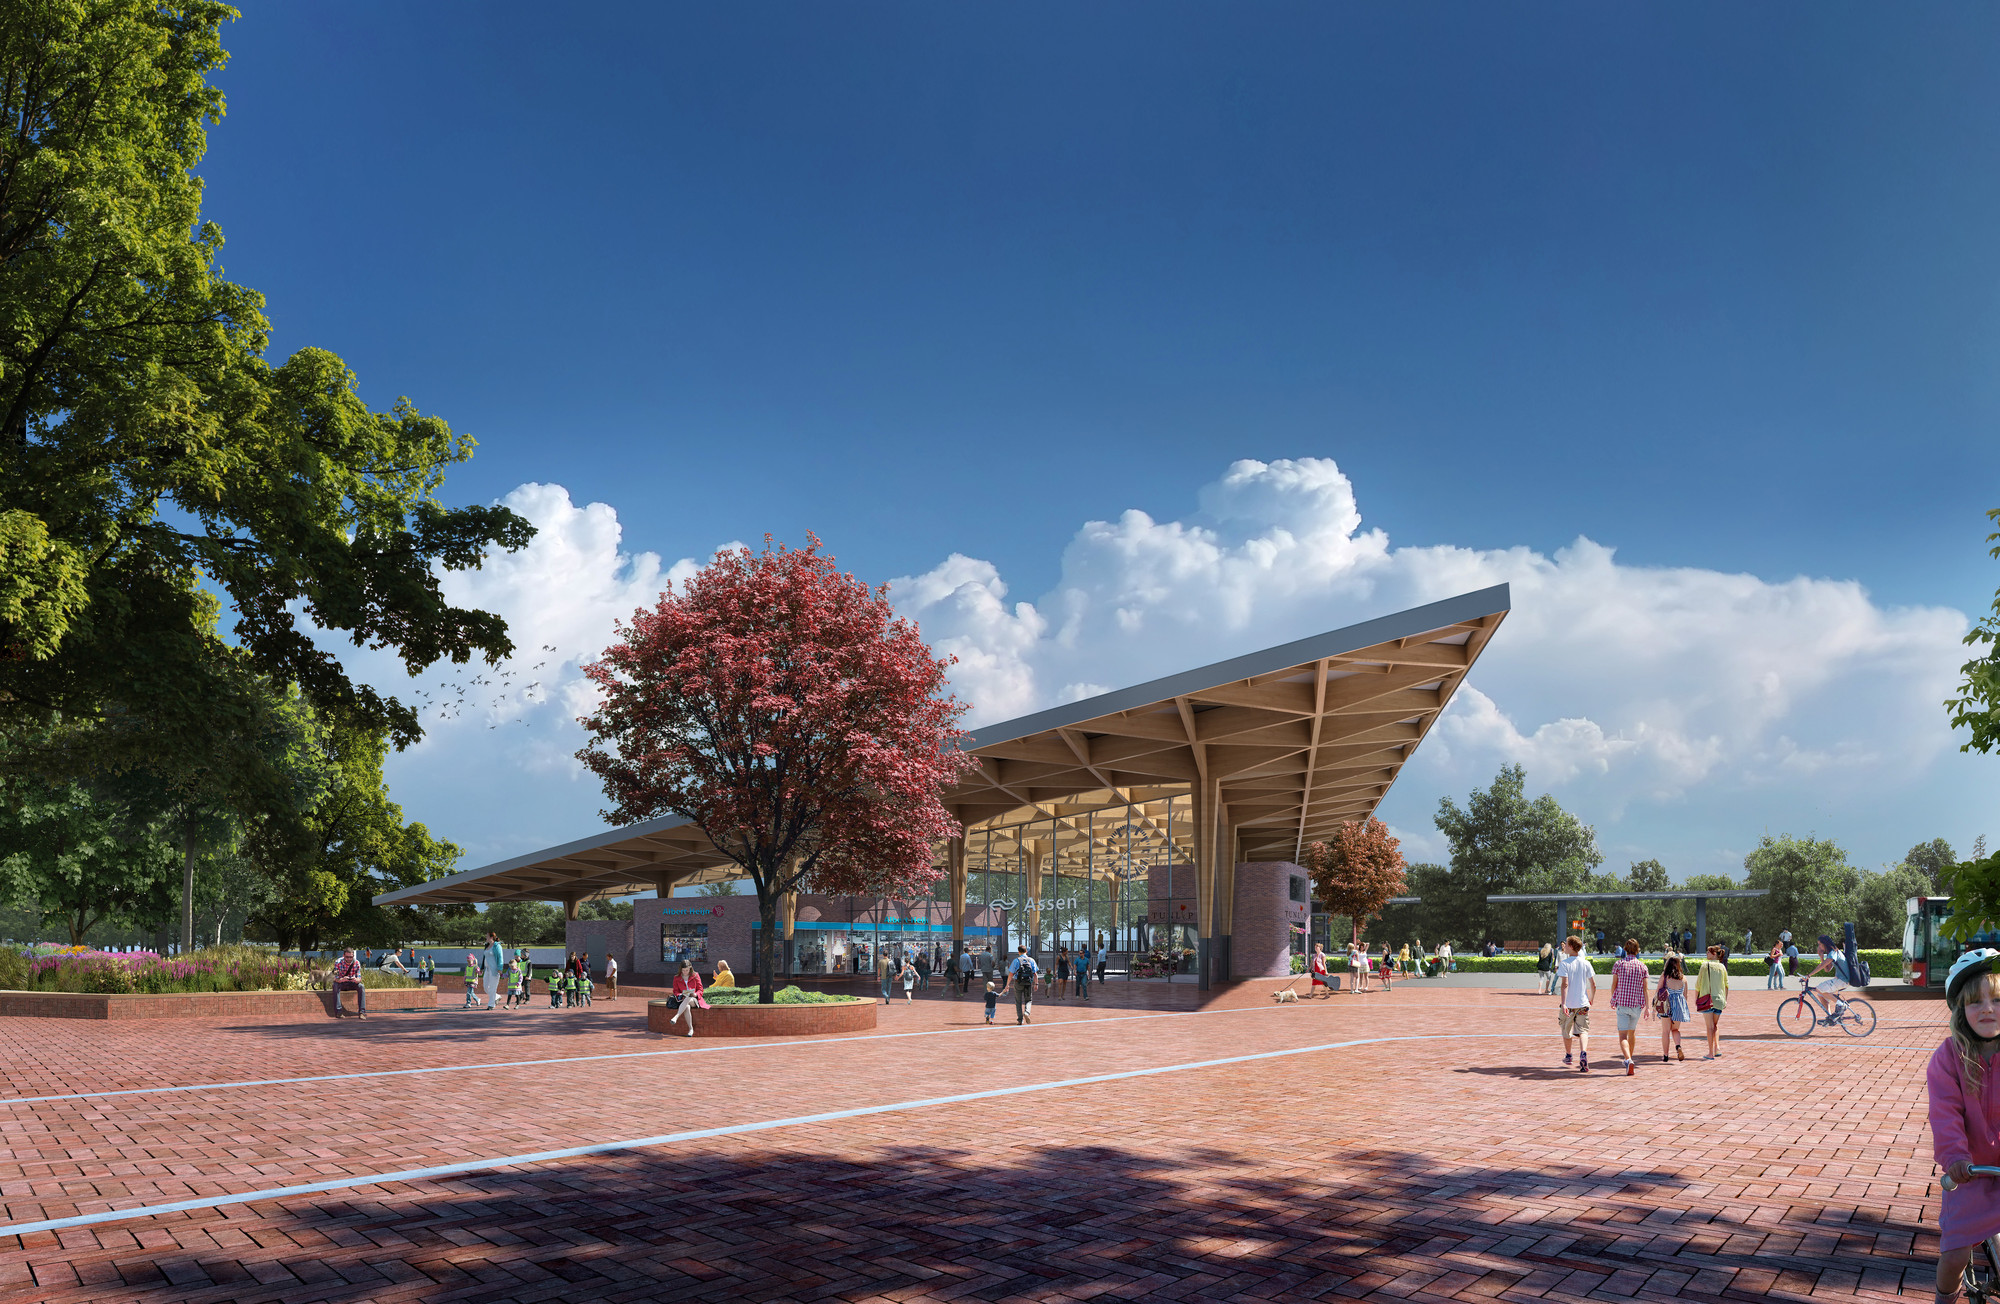 Powerhouse Company and De Zwarte Hond Selected to Redesign Assen Station, Entrance . Image © Powerhouse Company and De Zwarte Hond